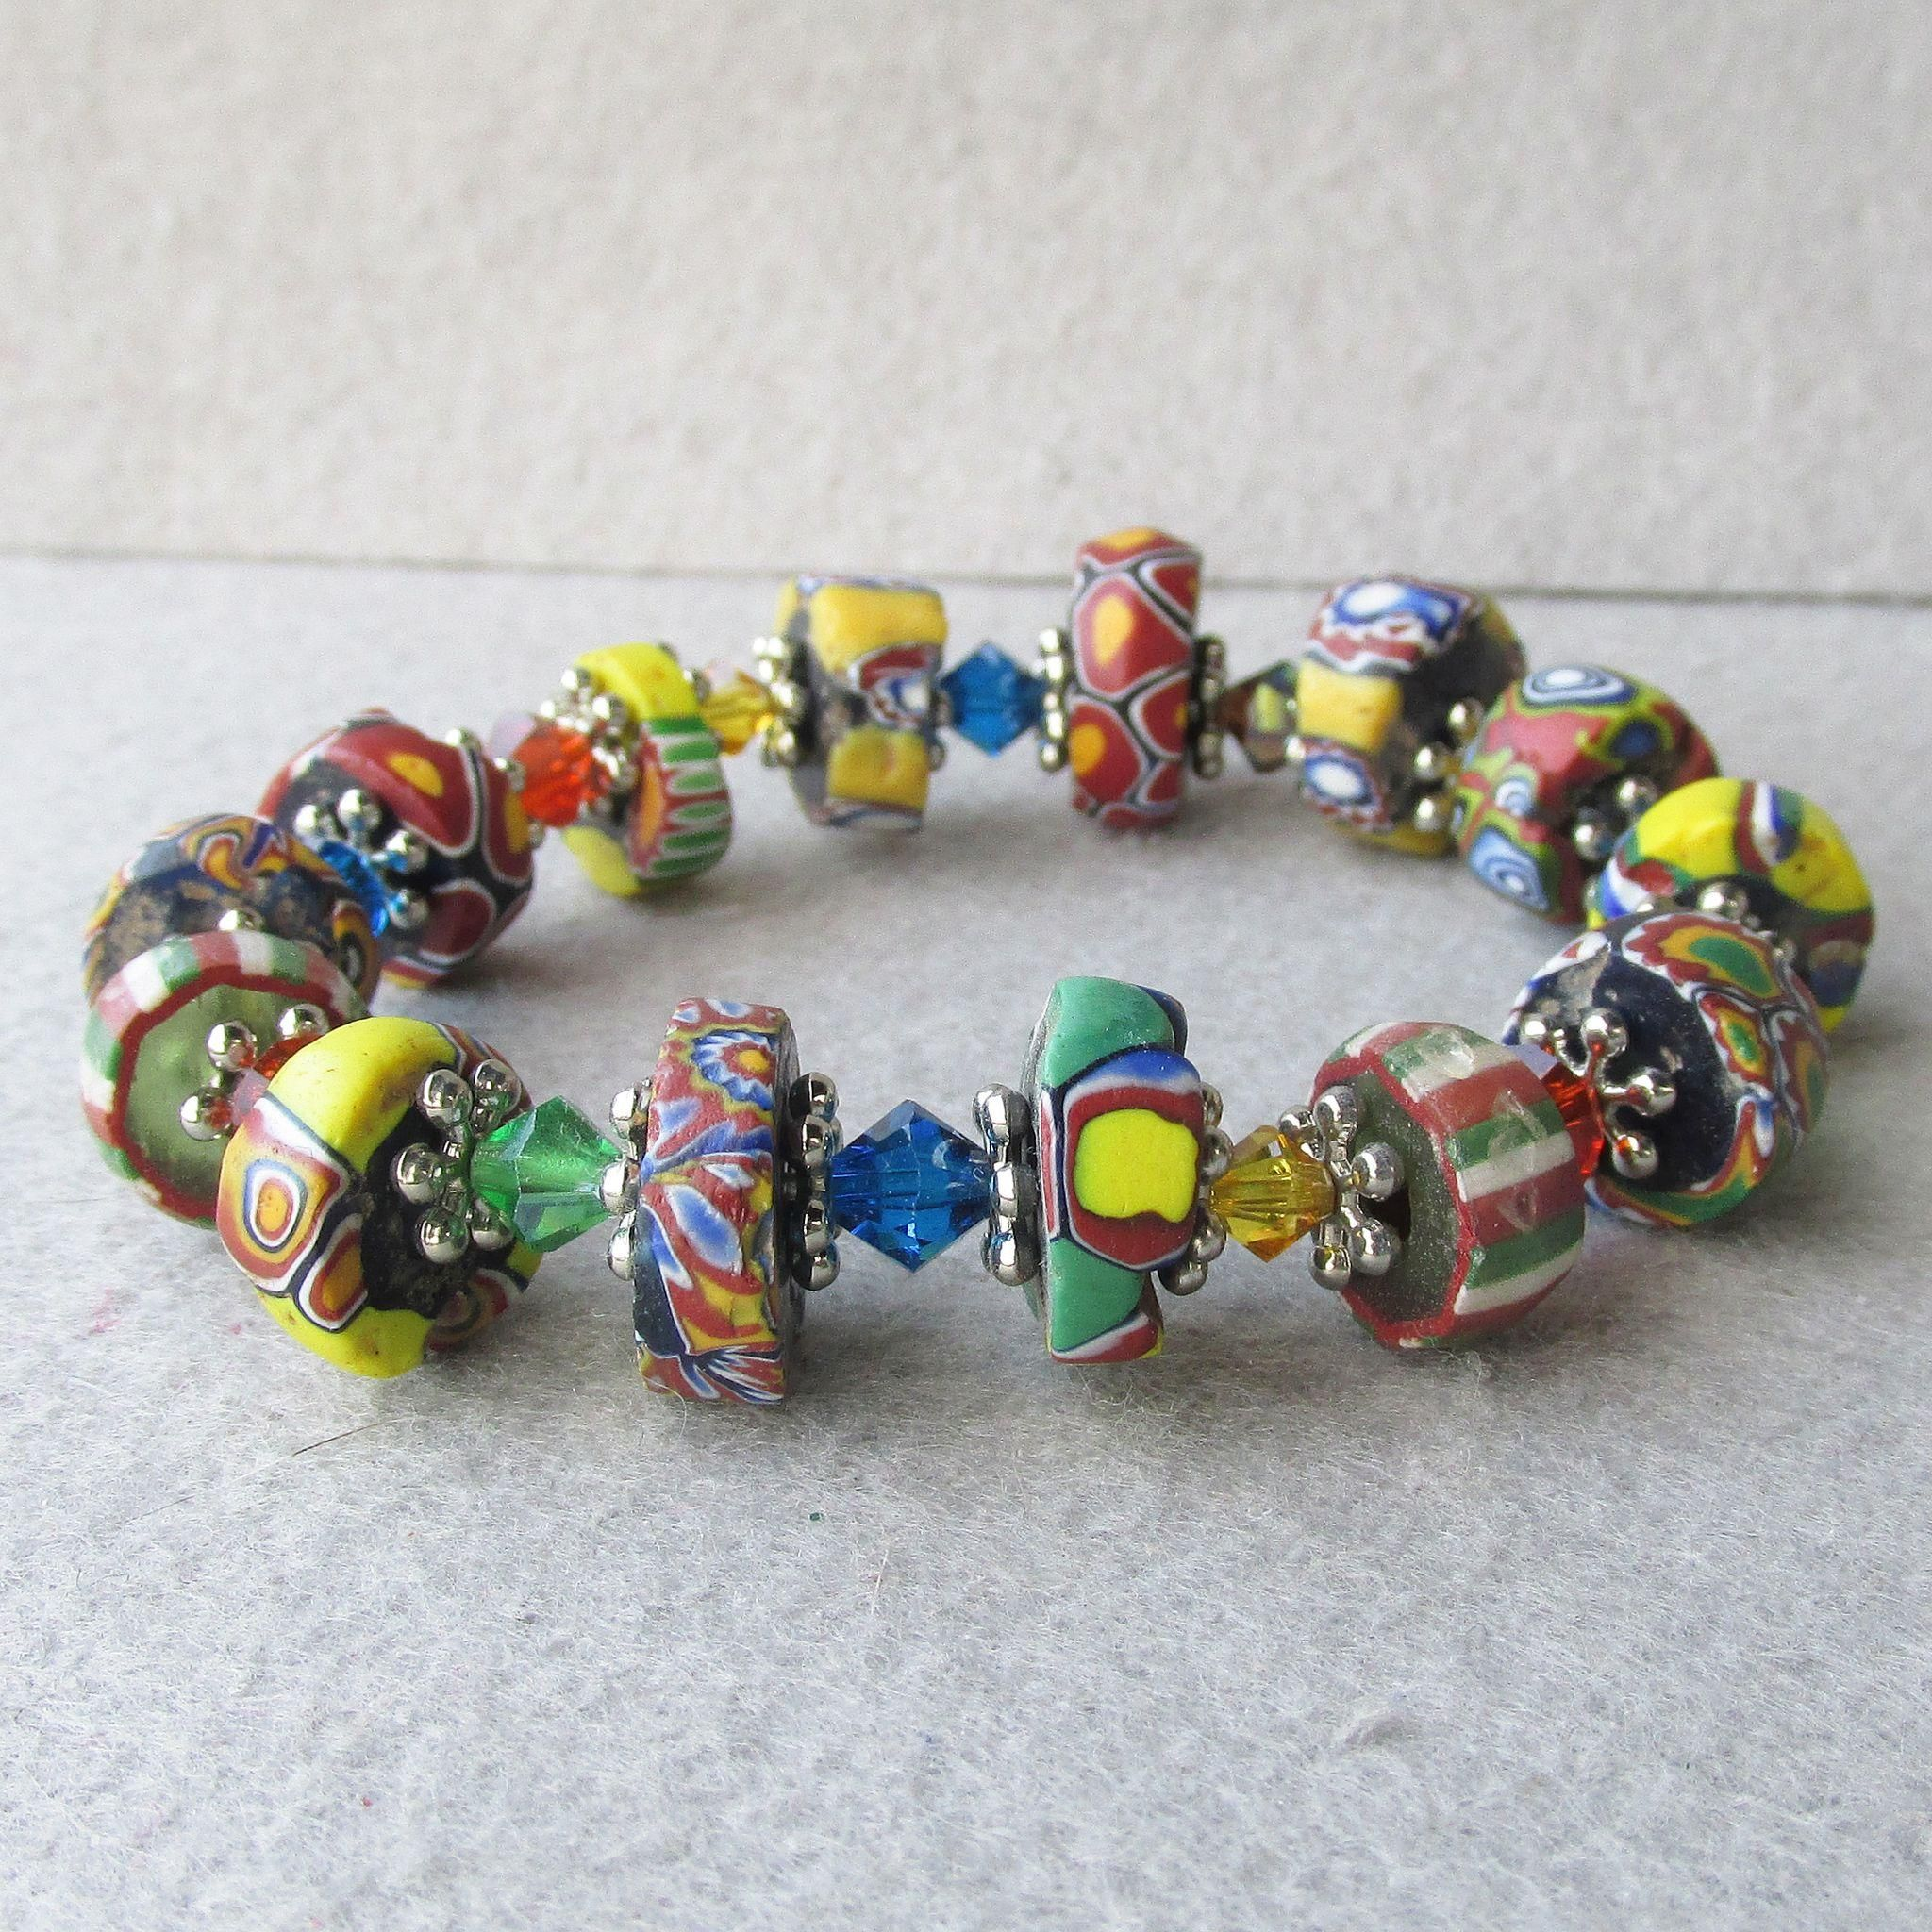 Bead Glass African Beads: Artisan Antique African Trade Venetian Art Glass Bead